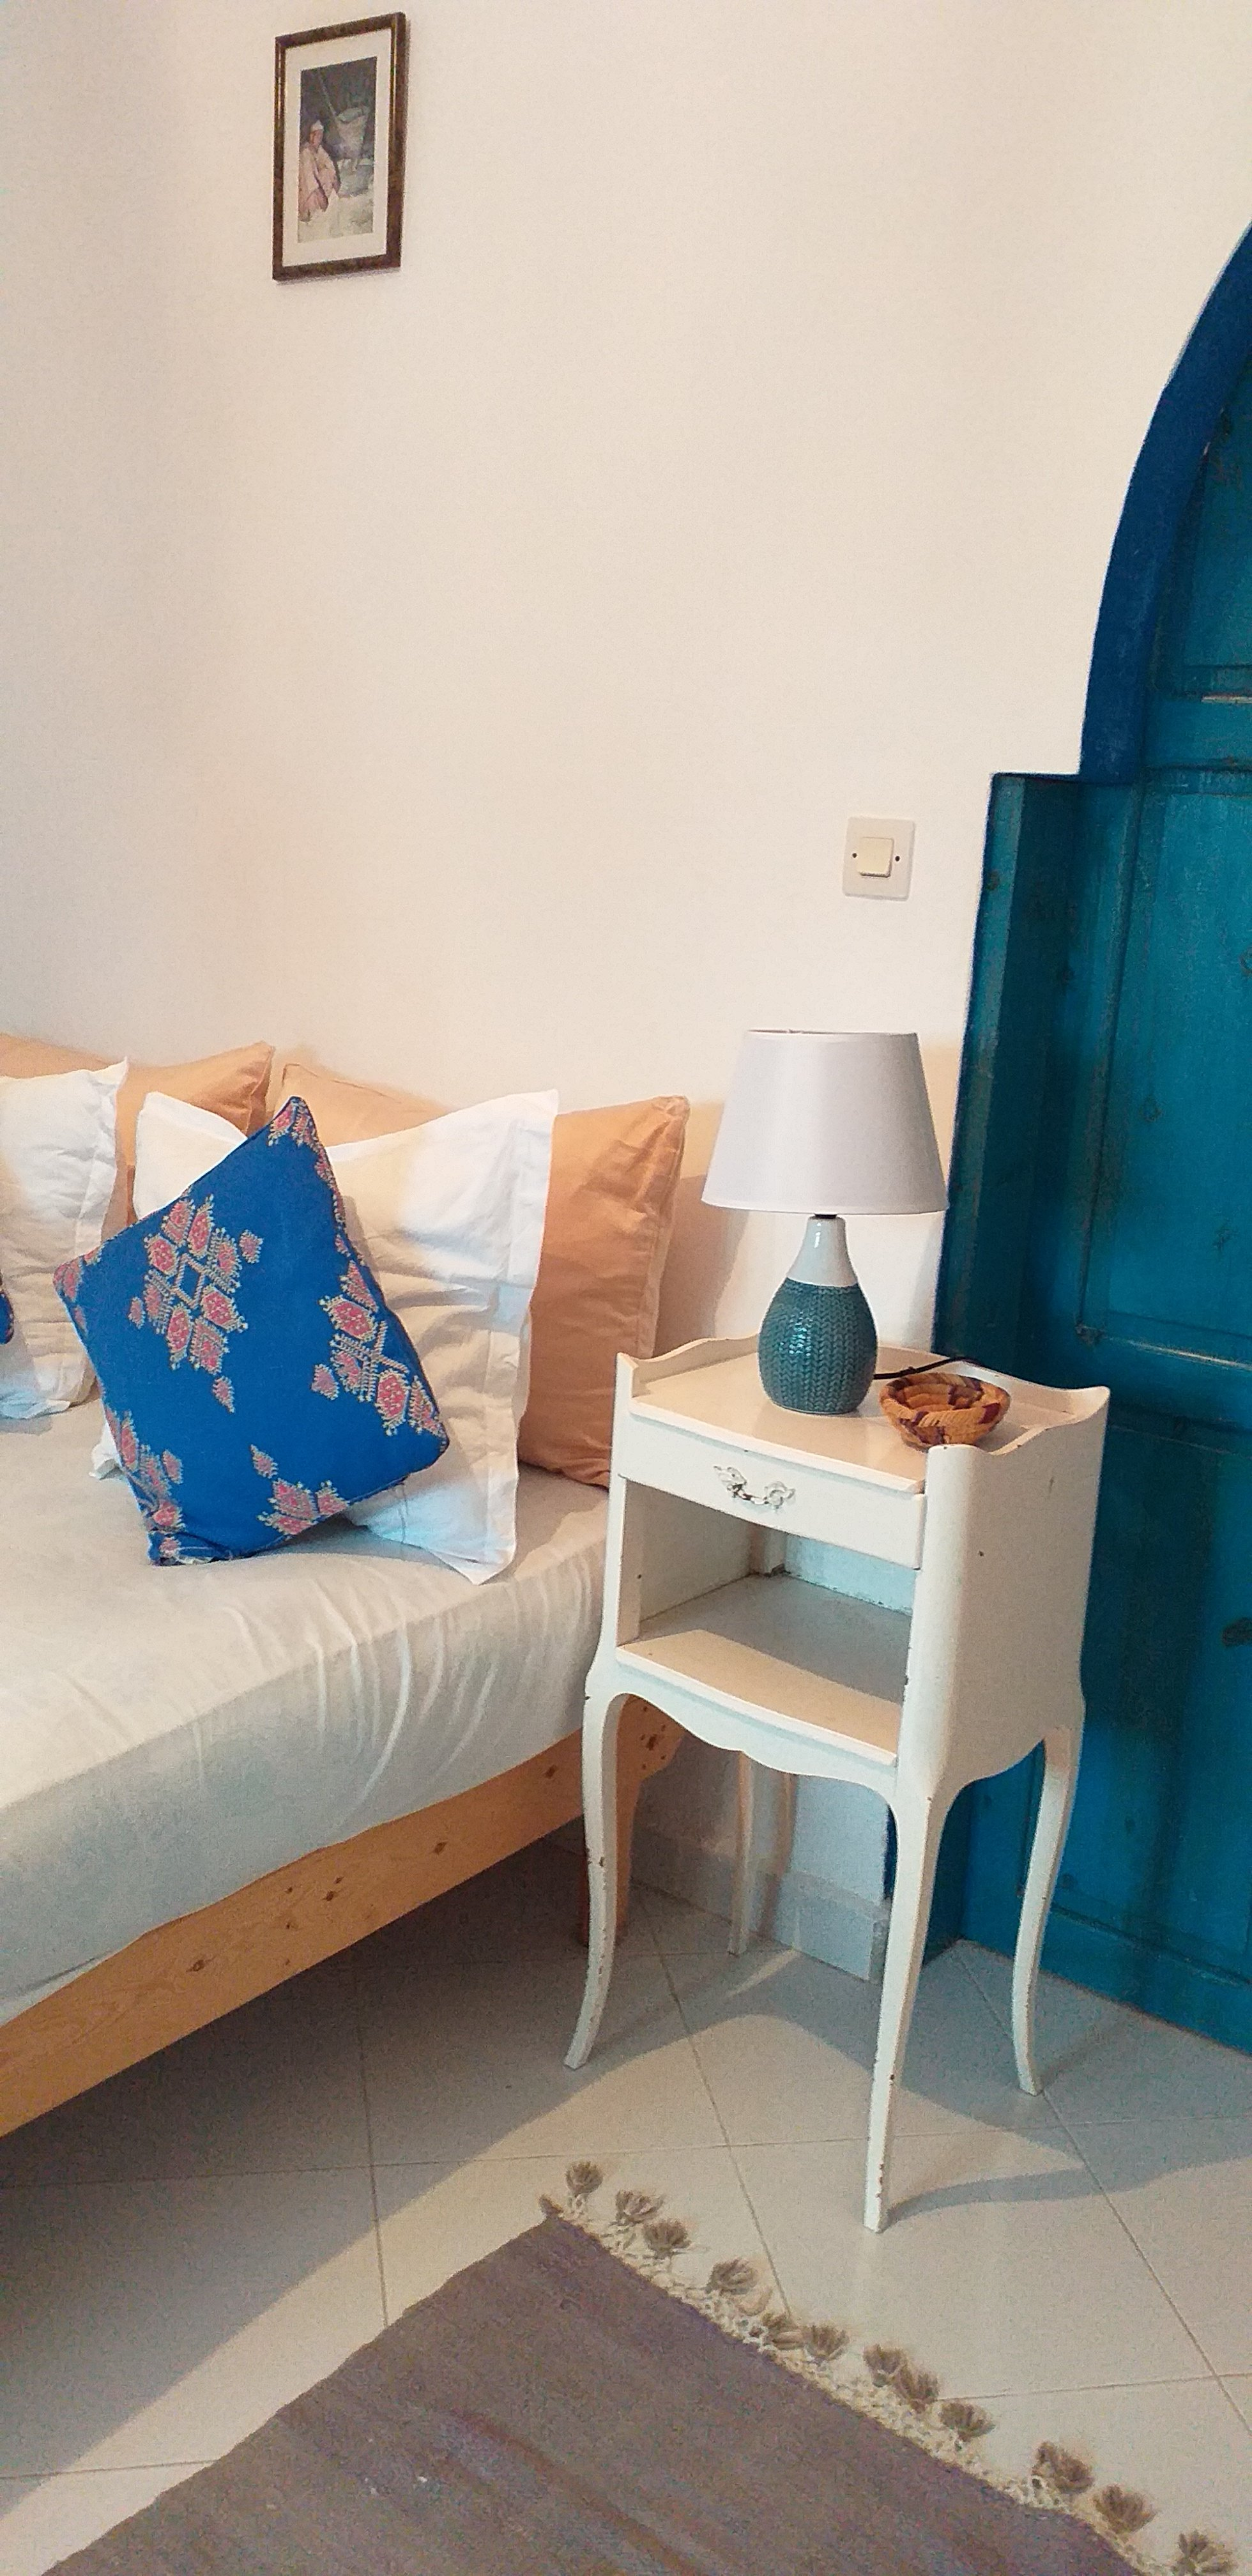 airbnb at Oualidia